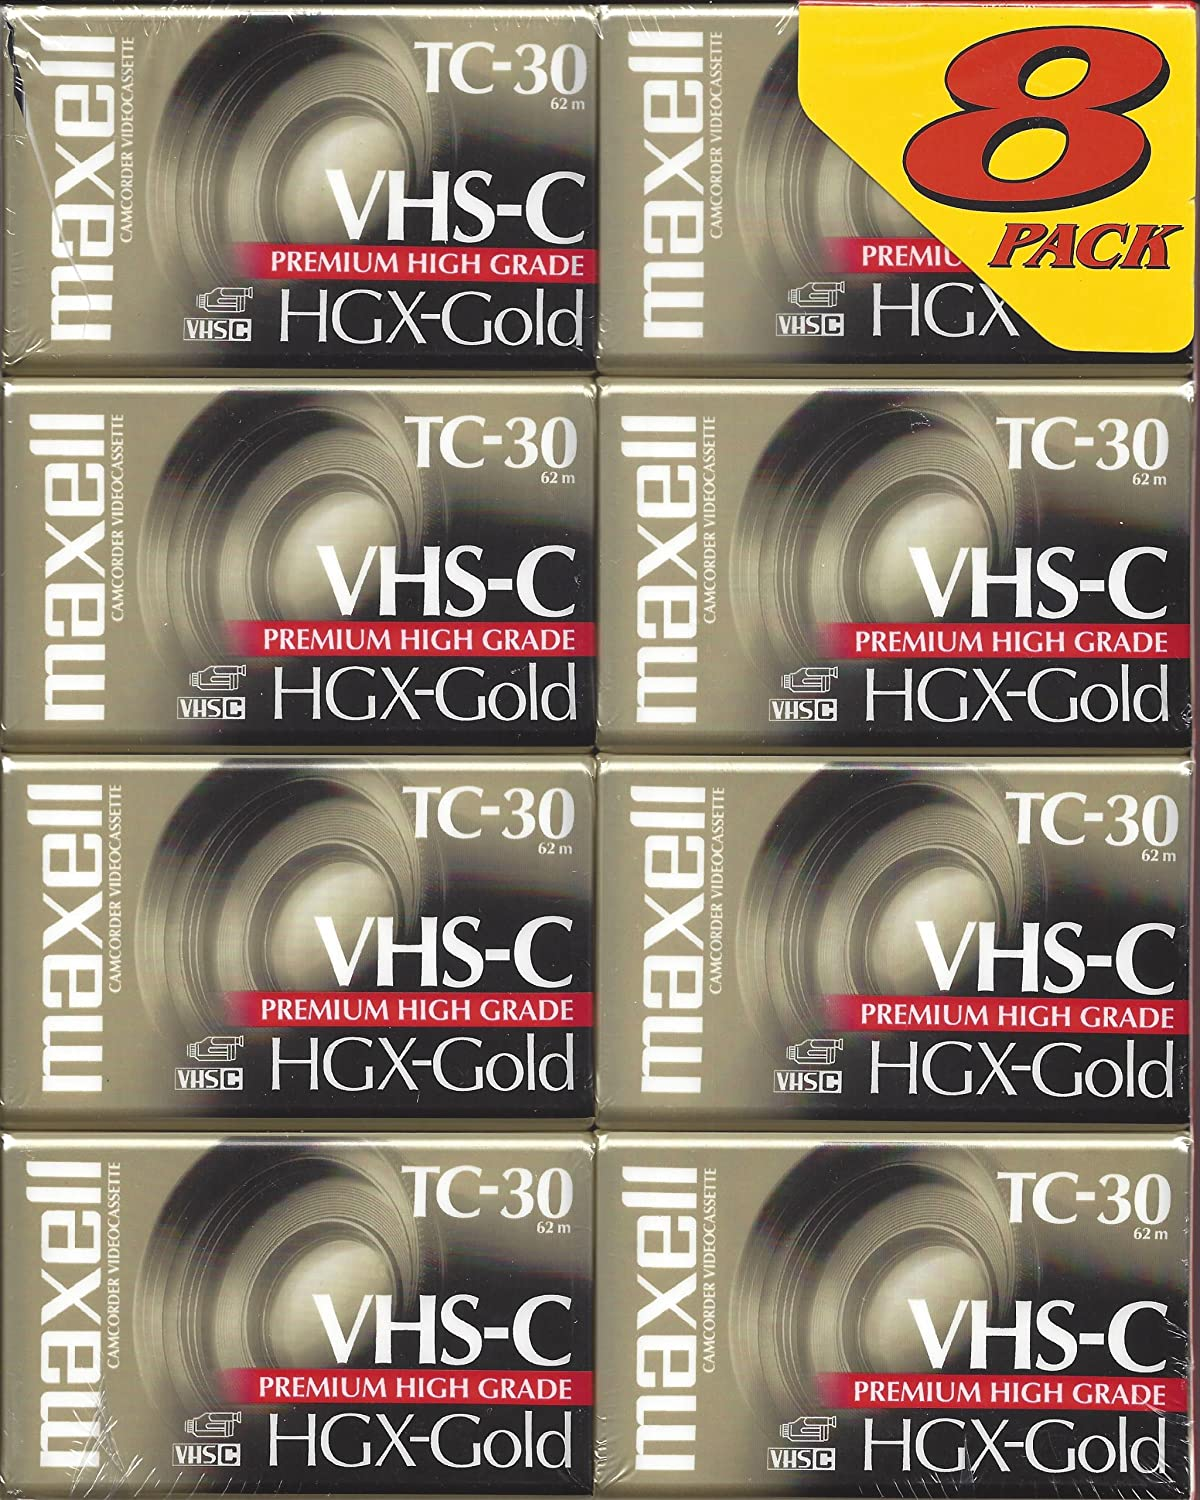 Maxell TC-30 VHS-C Camcorder HGX-Gold Premium High Grade 8-Pack